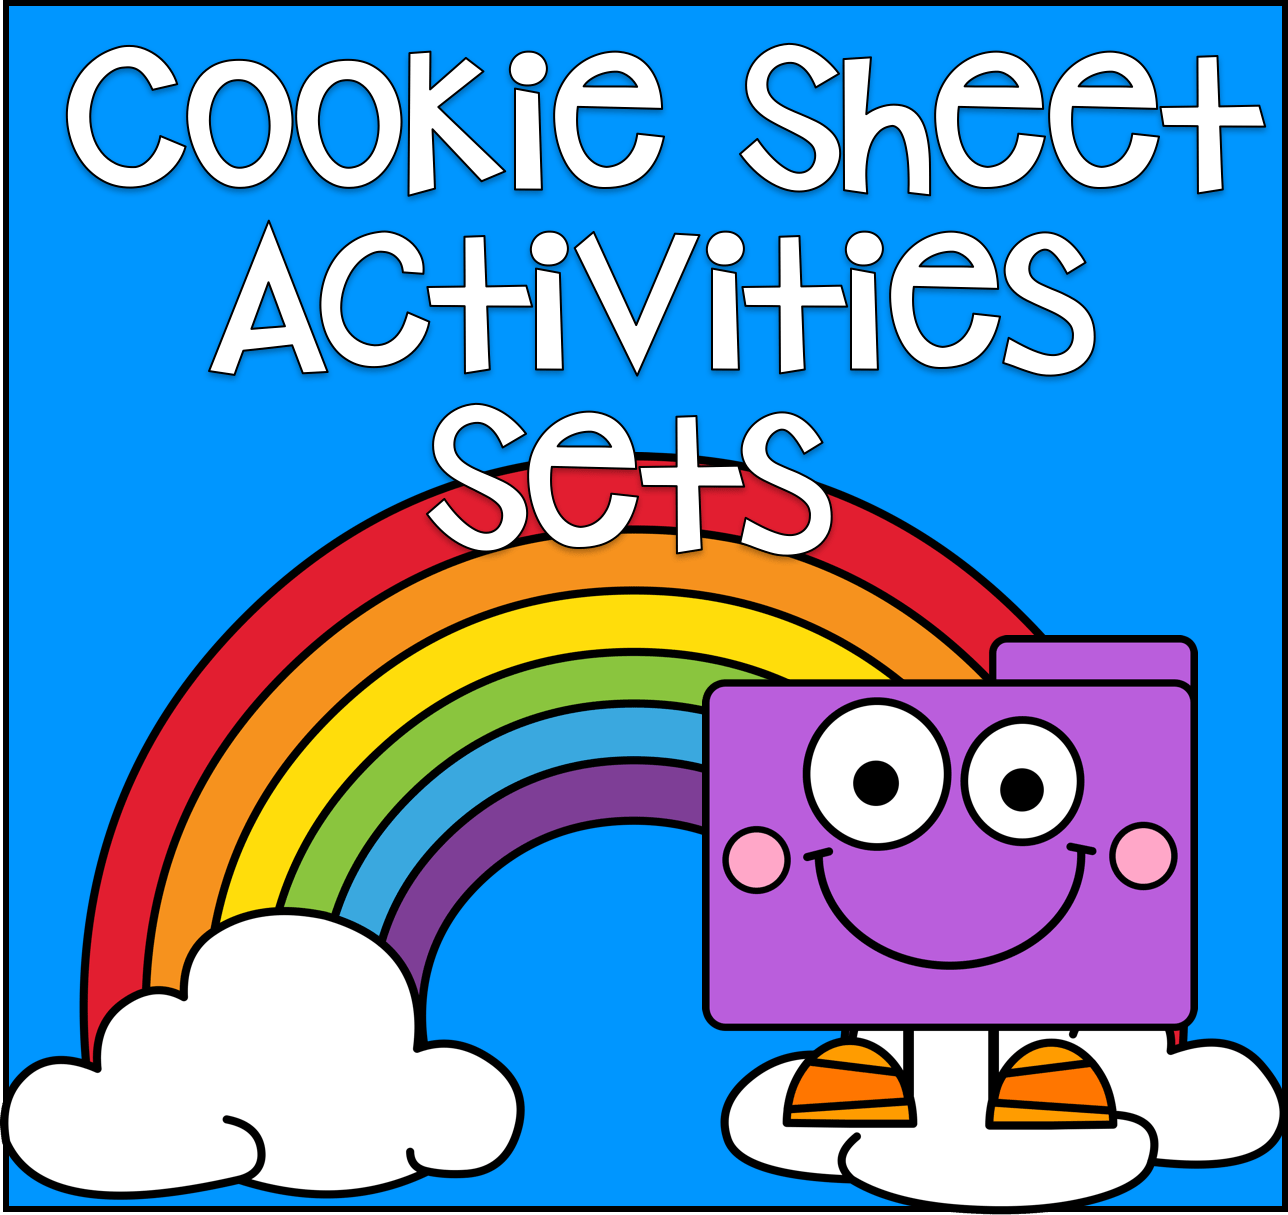 Cookie Sheet Activity Sets File Folder Games At File